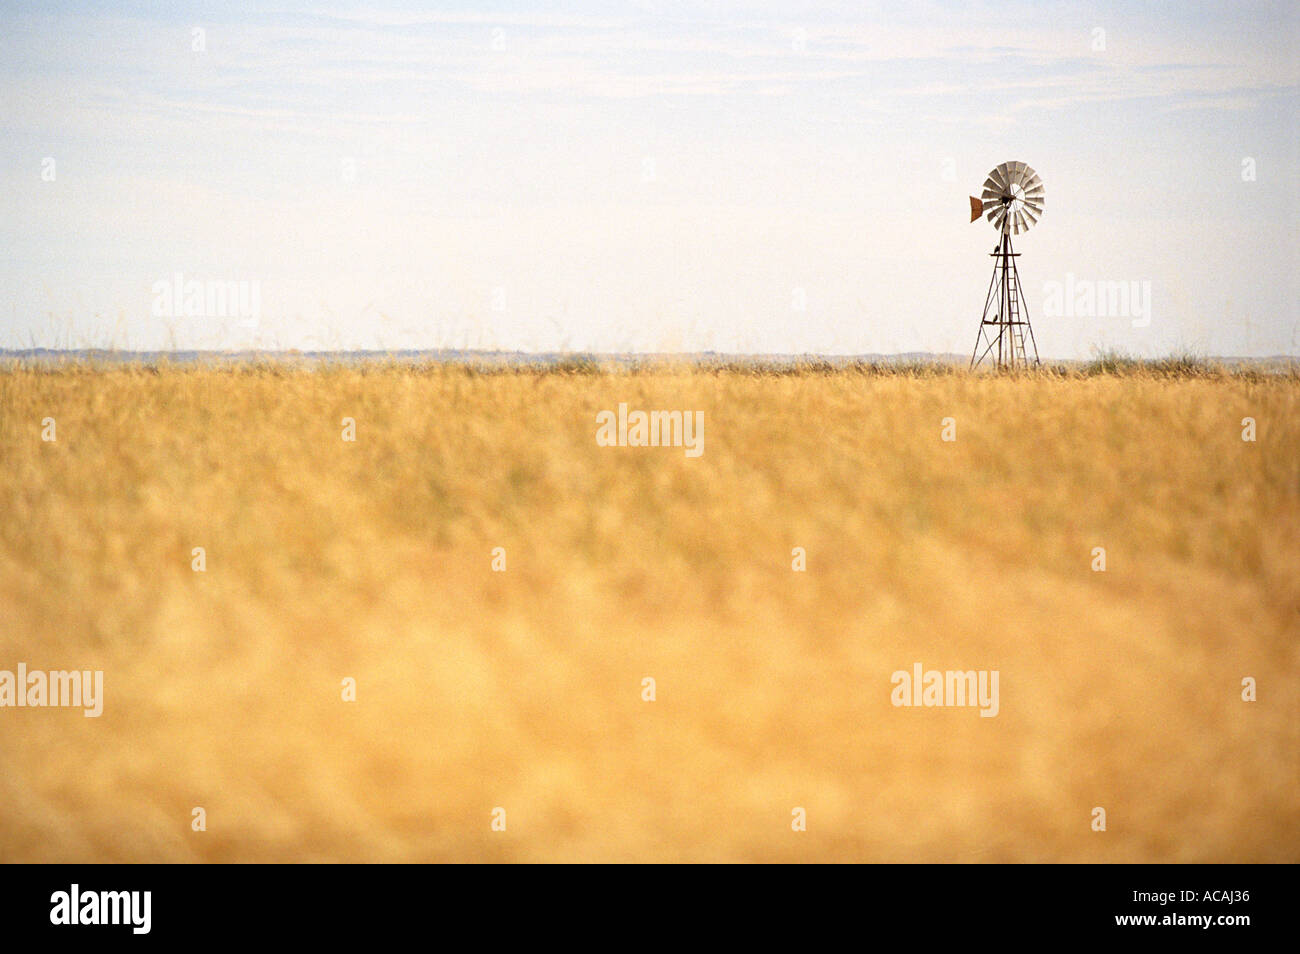 windmill in the Australian outback - Stock Image